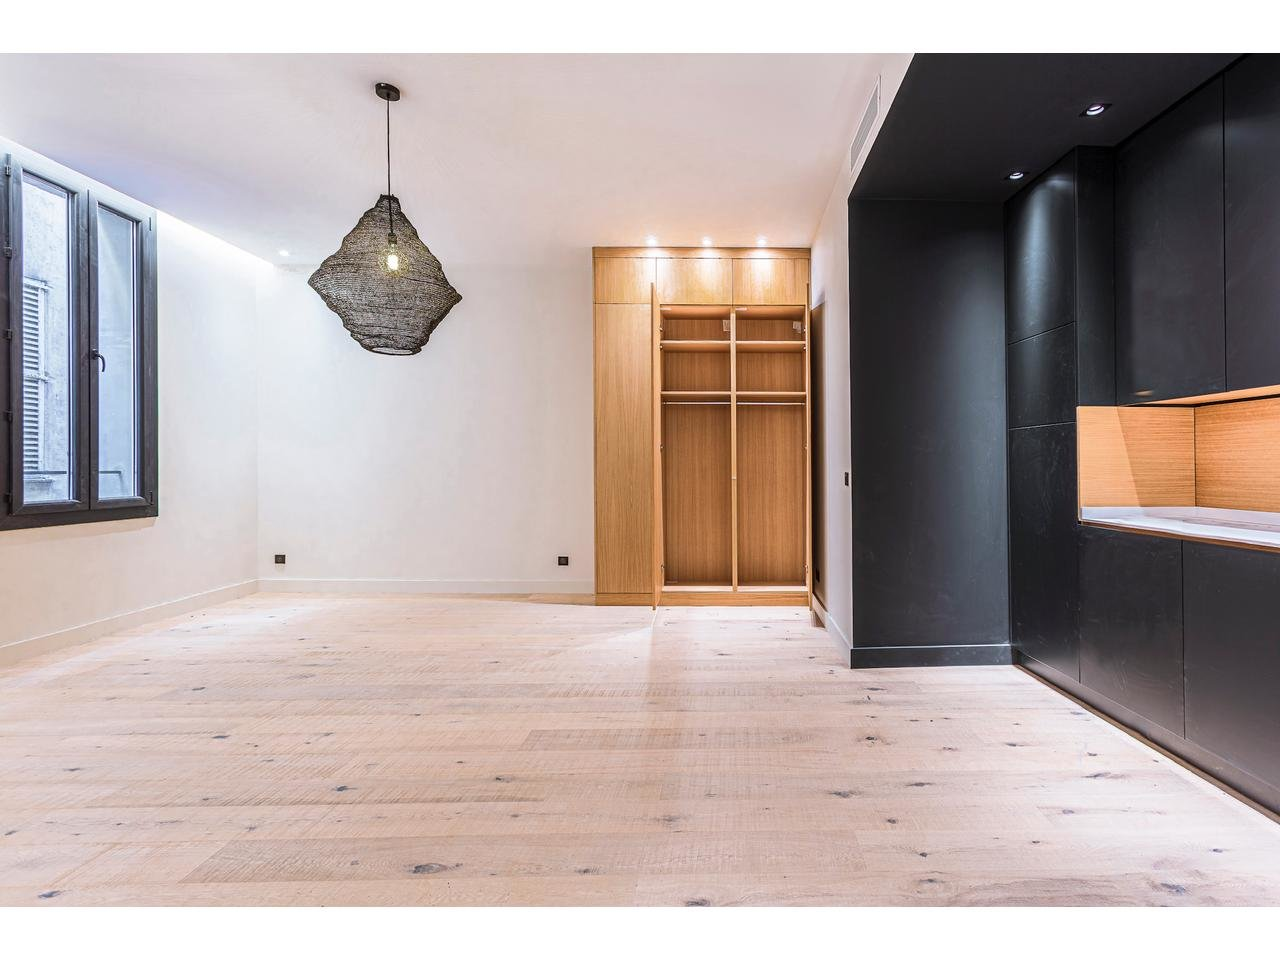 VIEUX NICE - renovated 3 room apartment in the old city